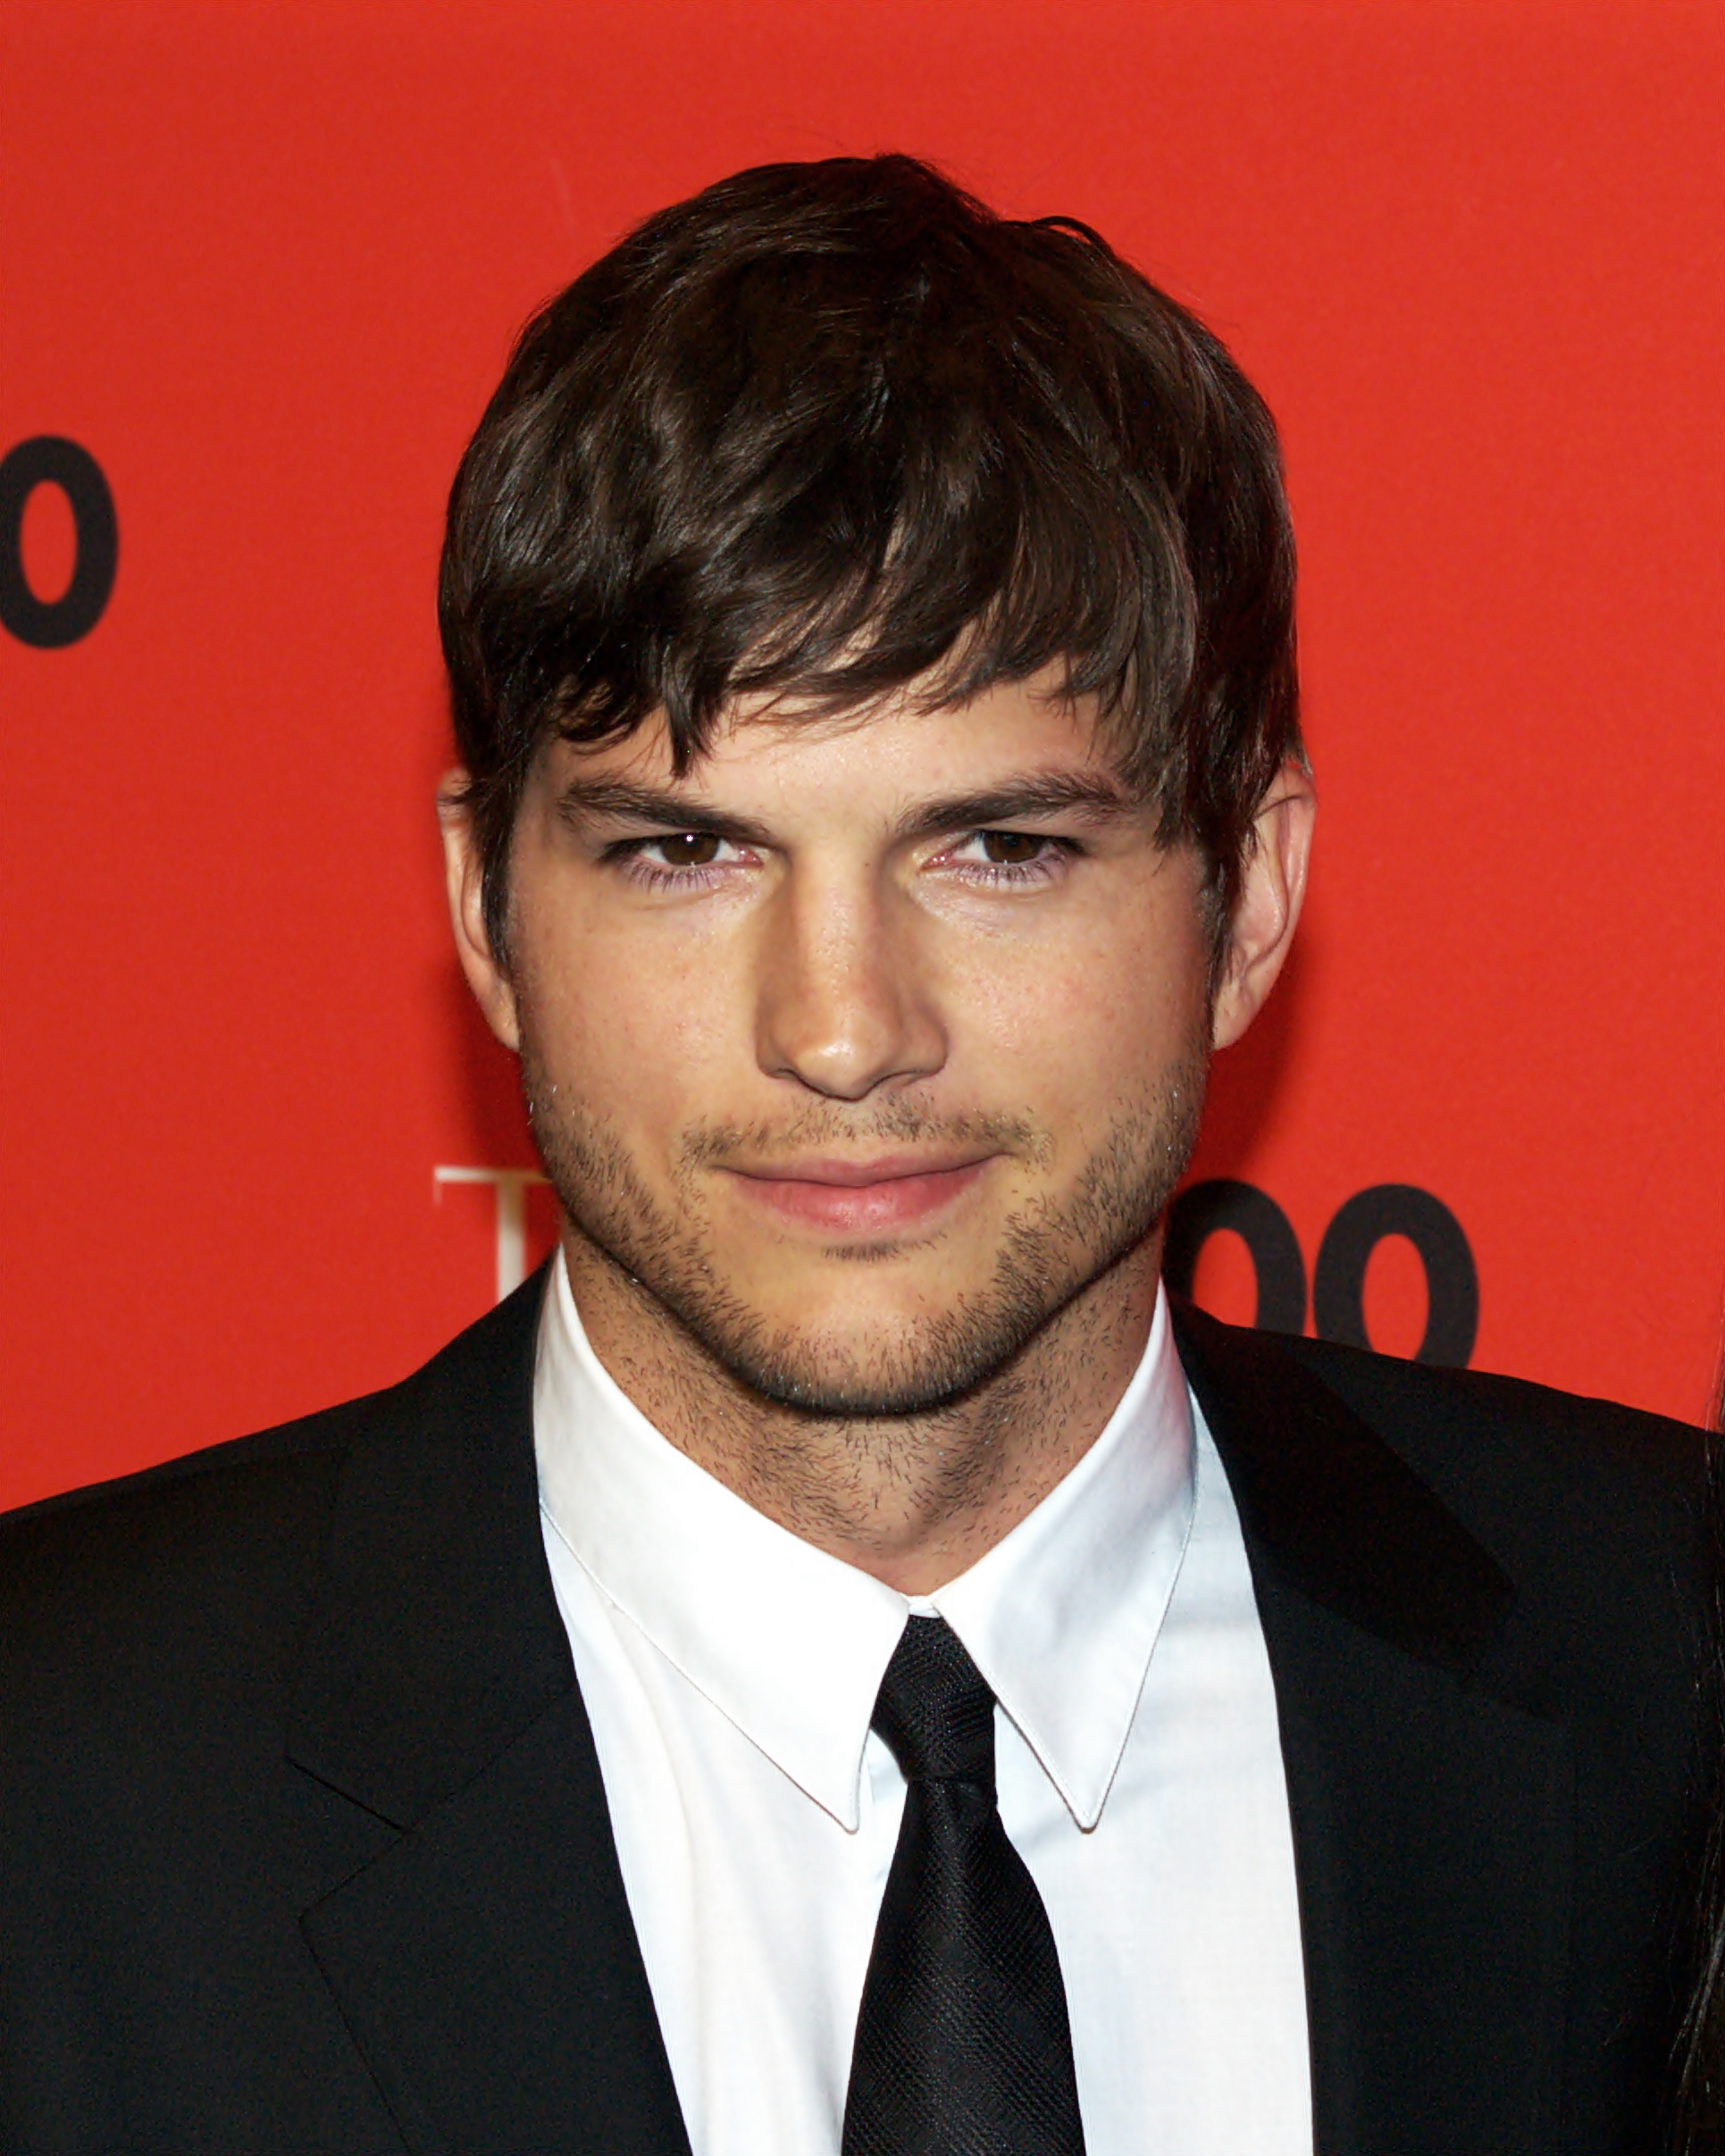 Watch the LIVE Stream as Lenovo and Ashton Kutcher Introduce a #BetterWay